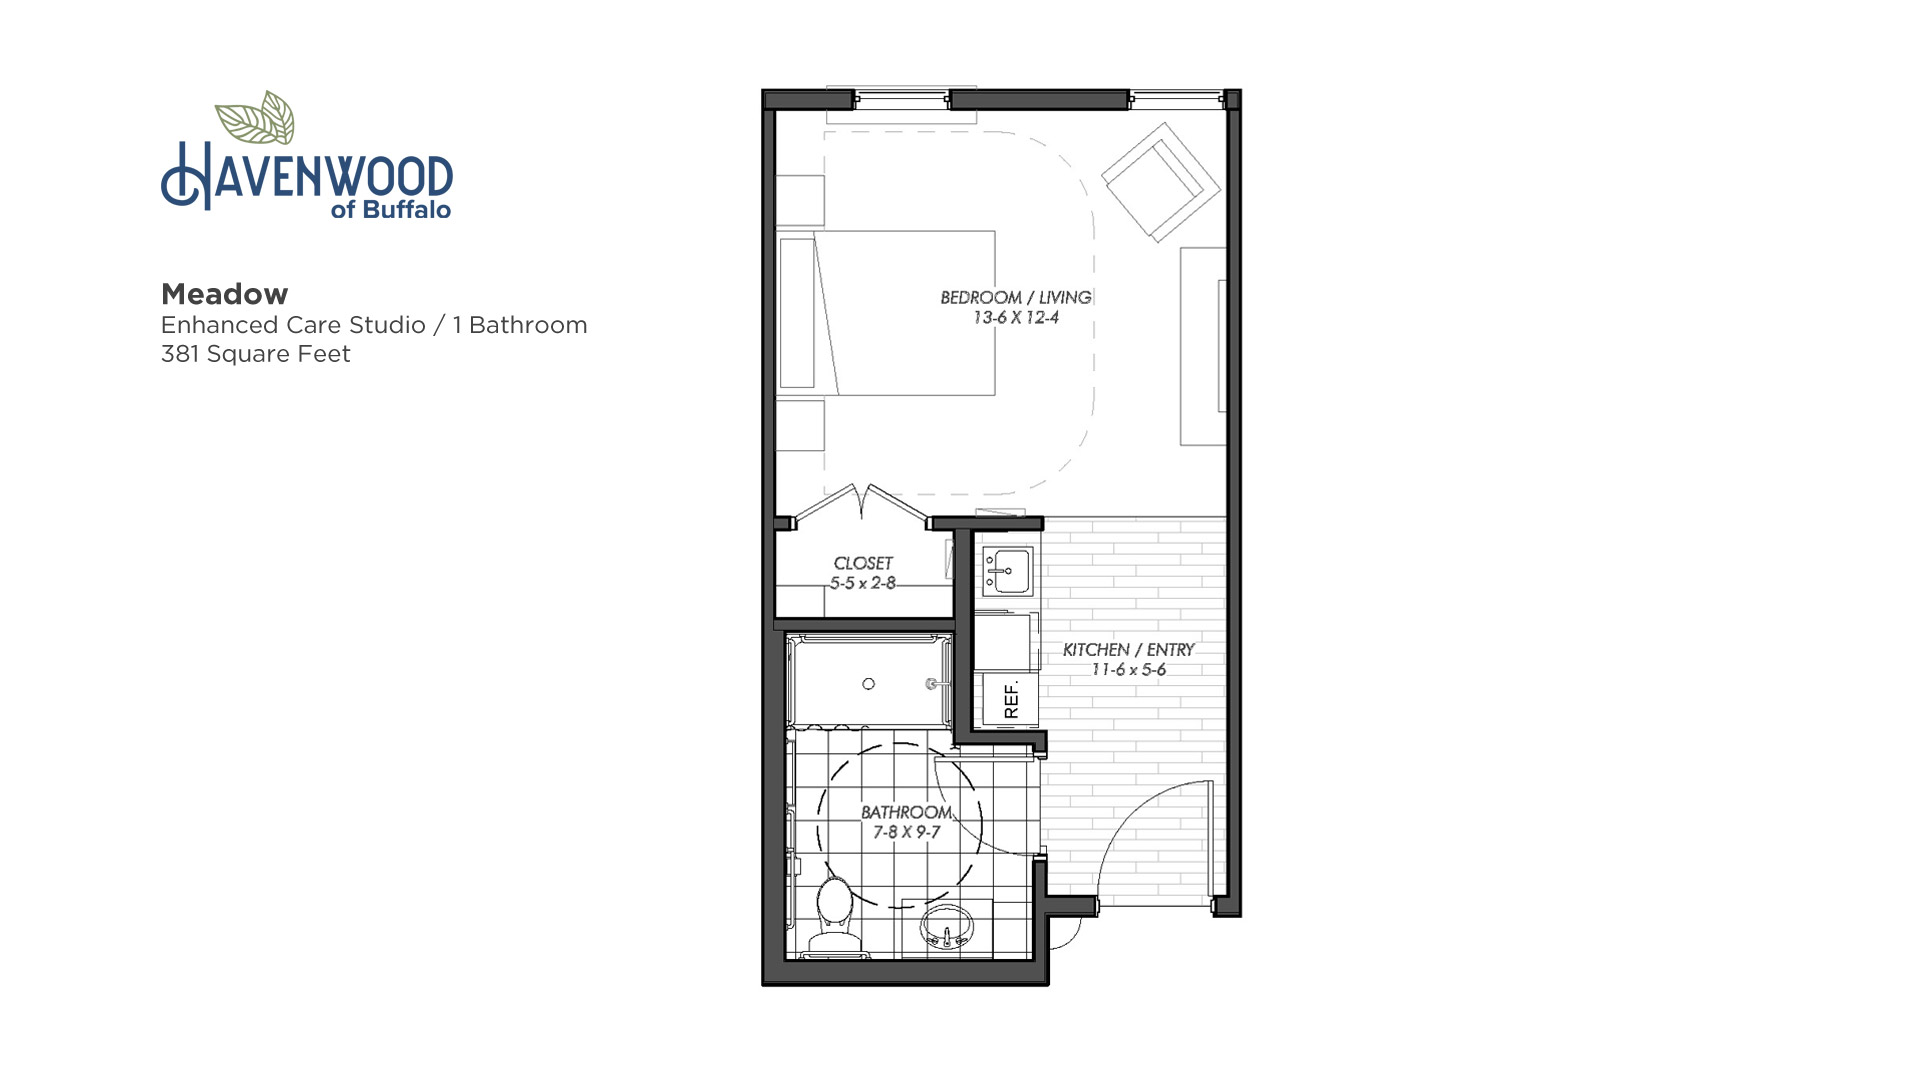 Havenwood of Buffalo Meadow Floor Plan